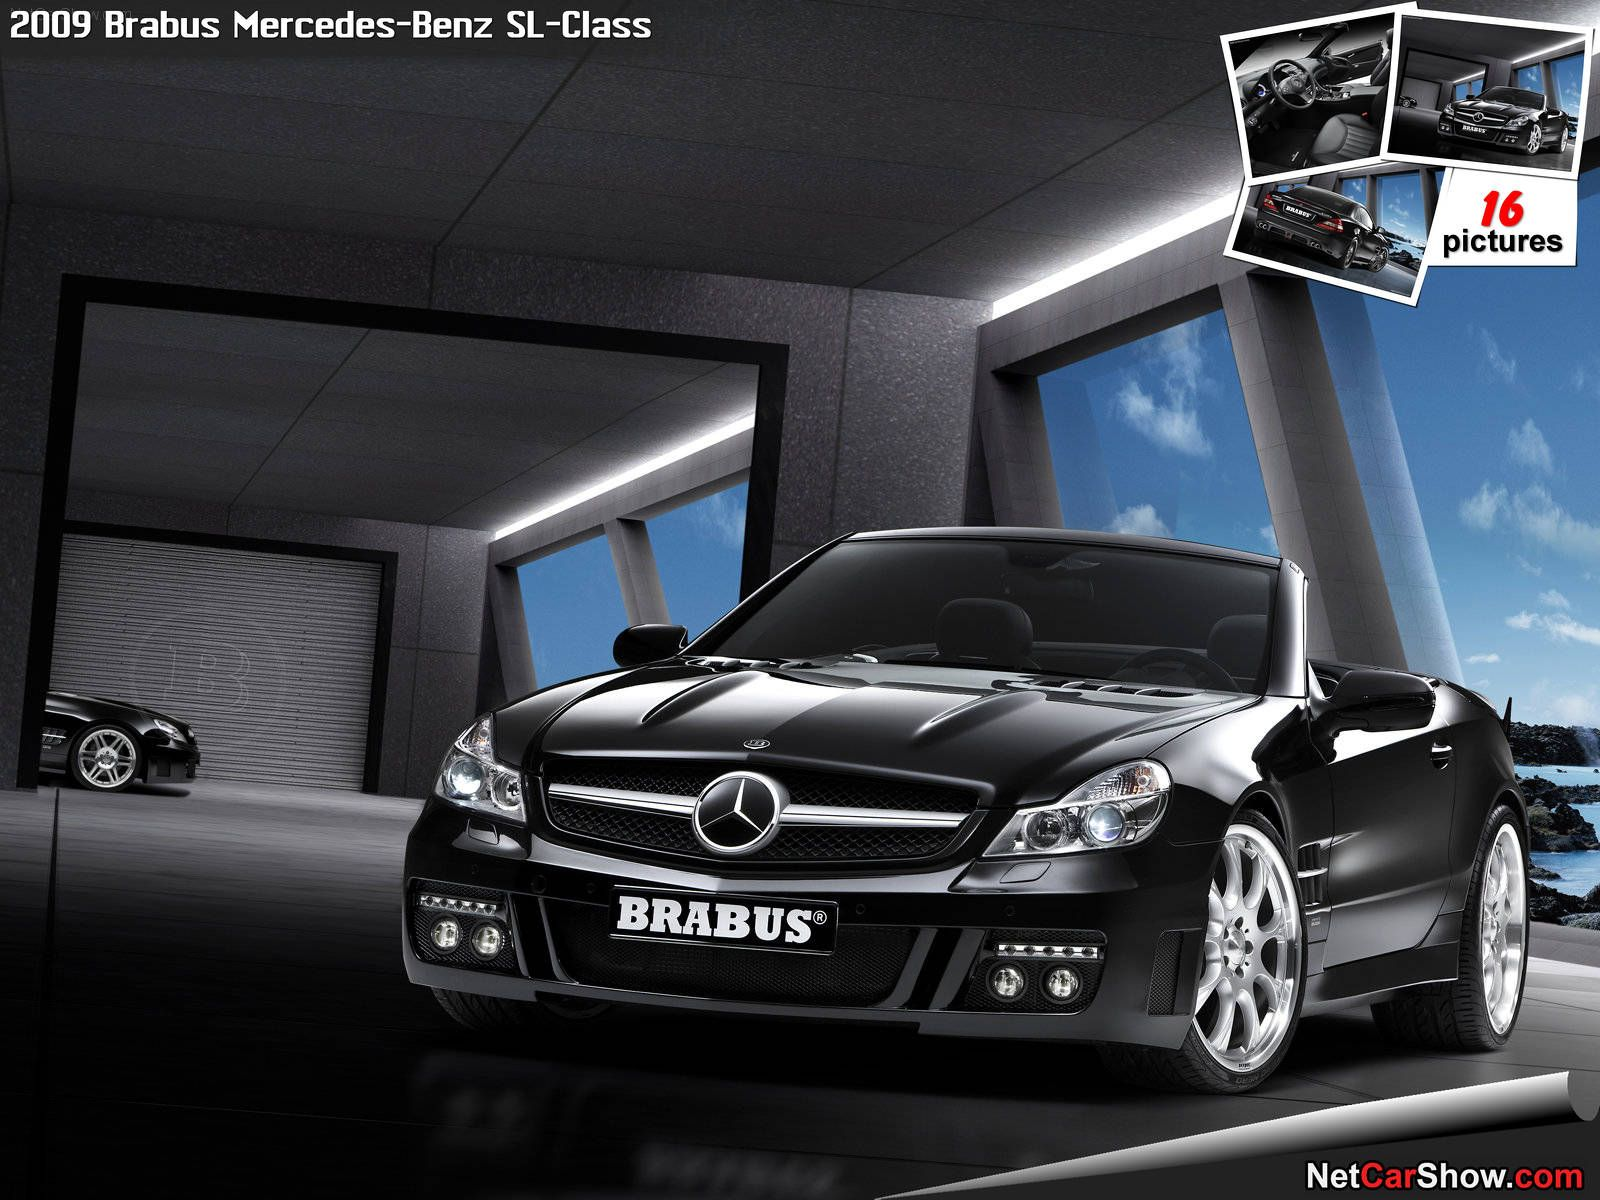 Brabus mercedes benz sl class 2009 follow link for more photos https